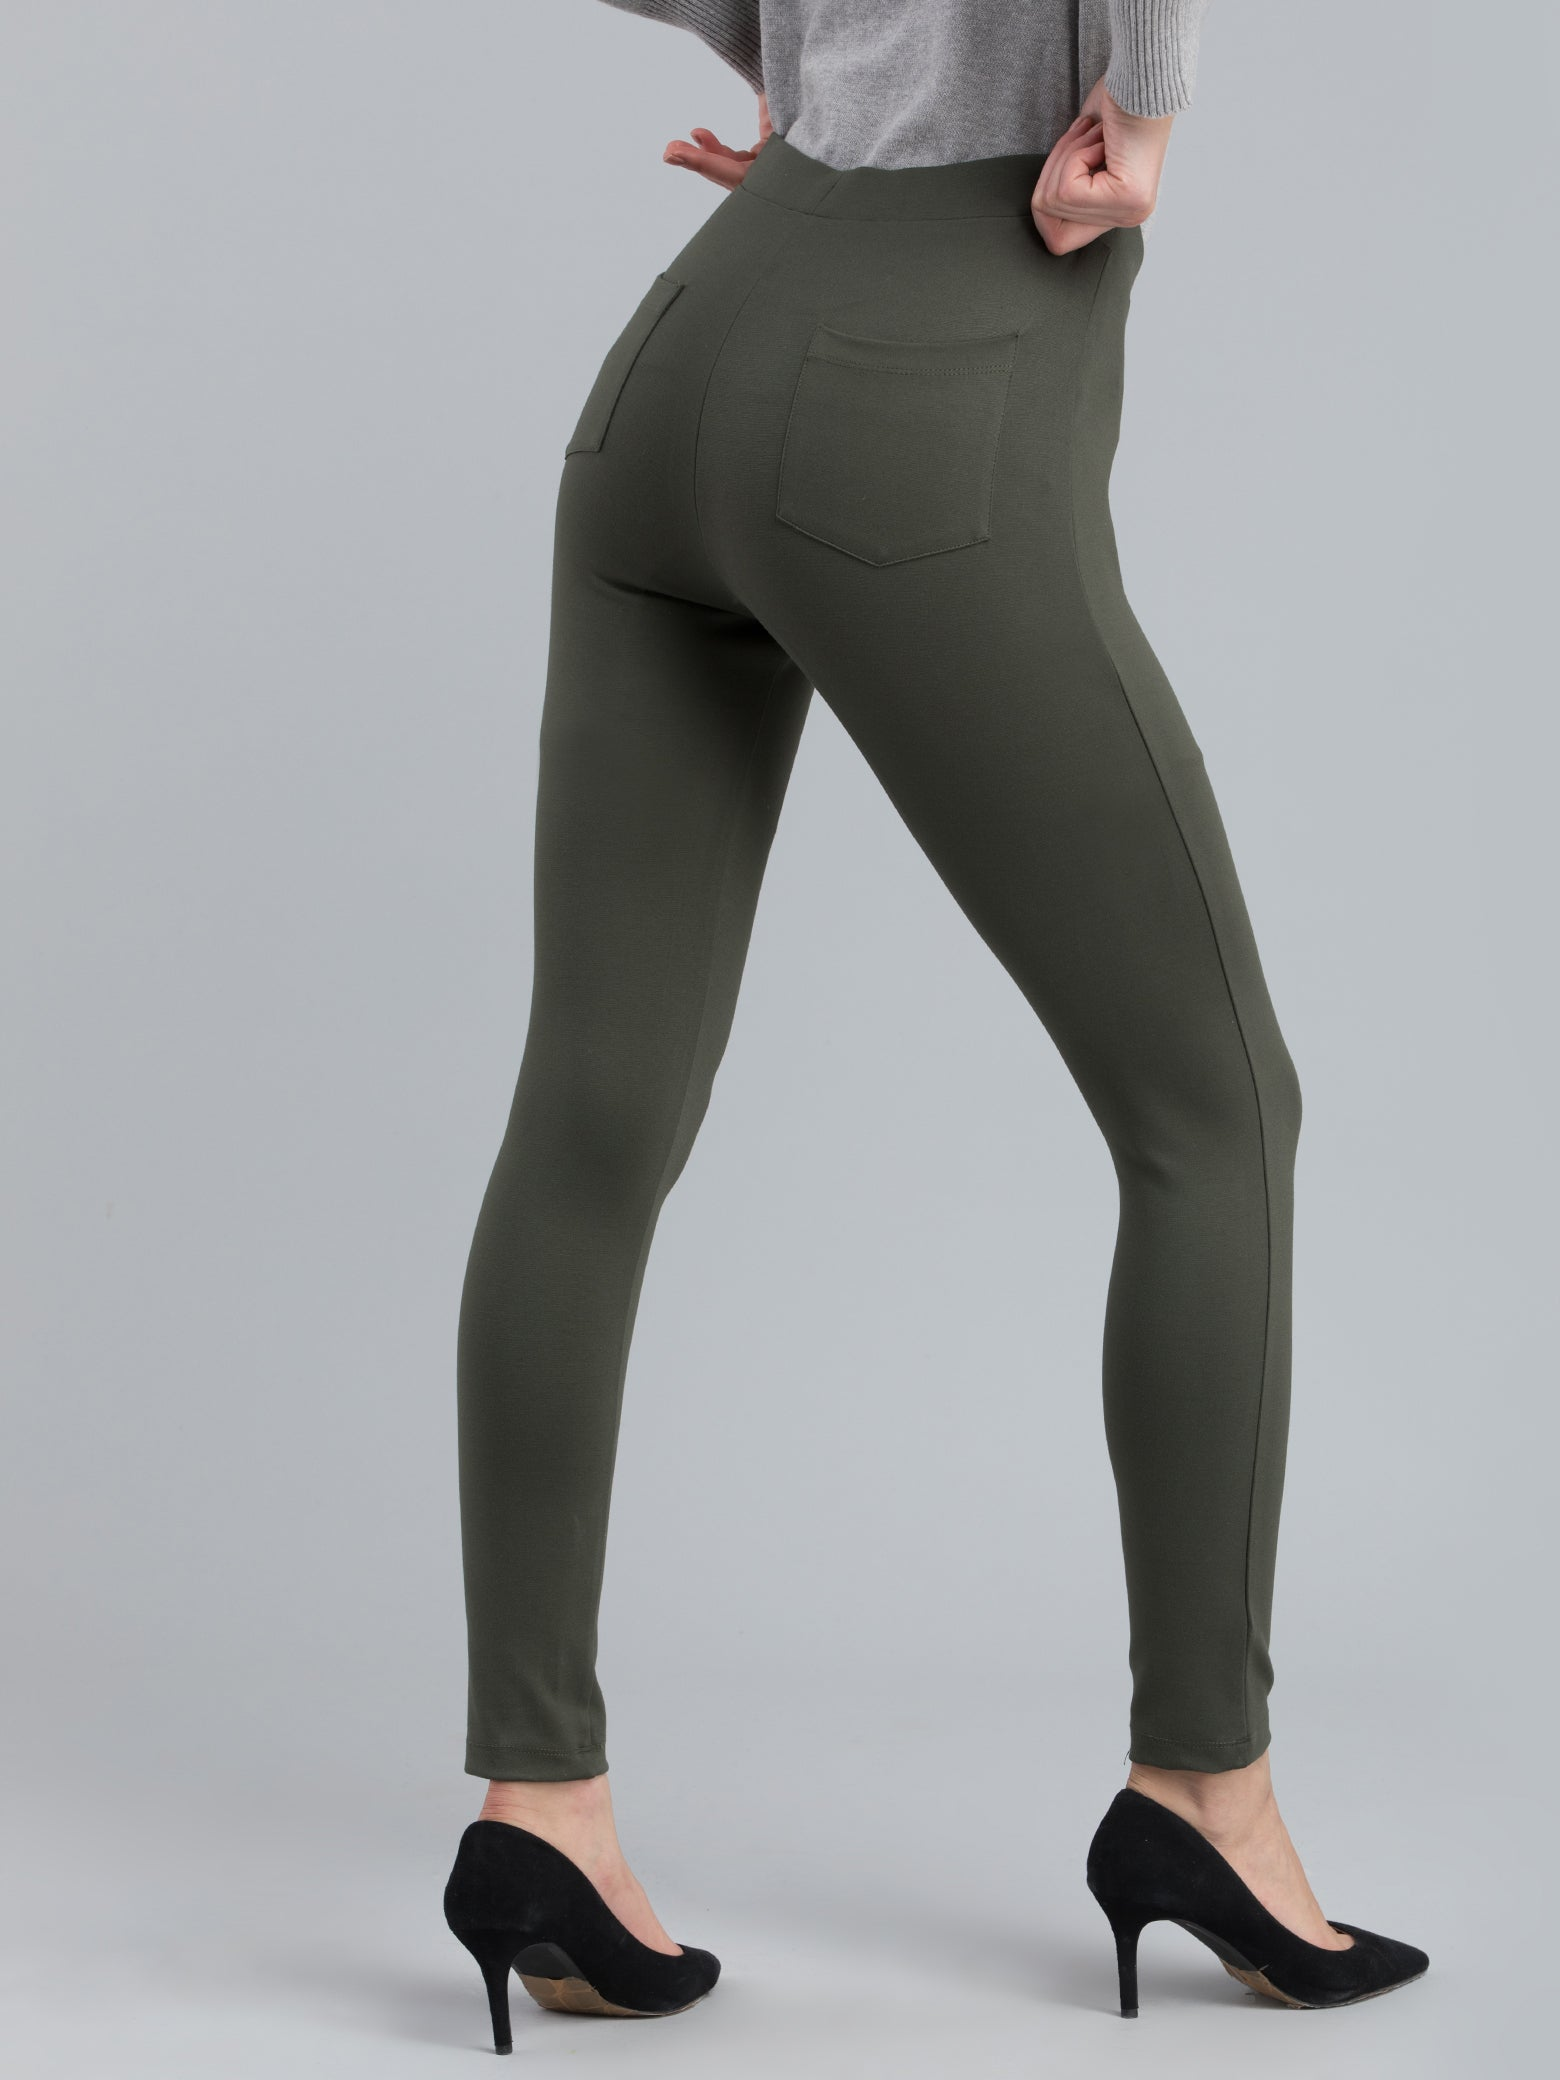 4 Way Stretch Skinny Fit LivIn Jeggings - Olive